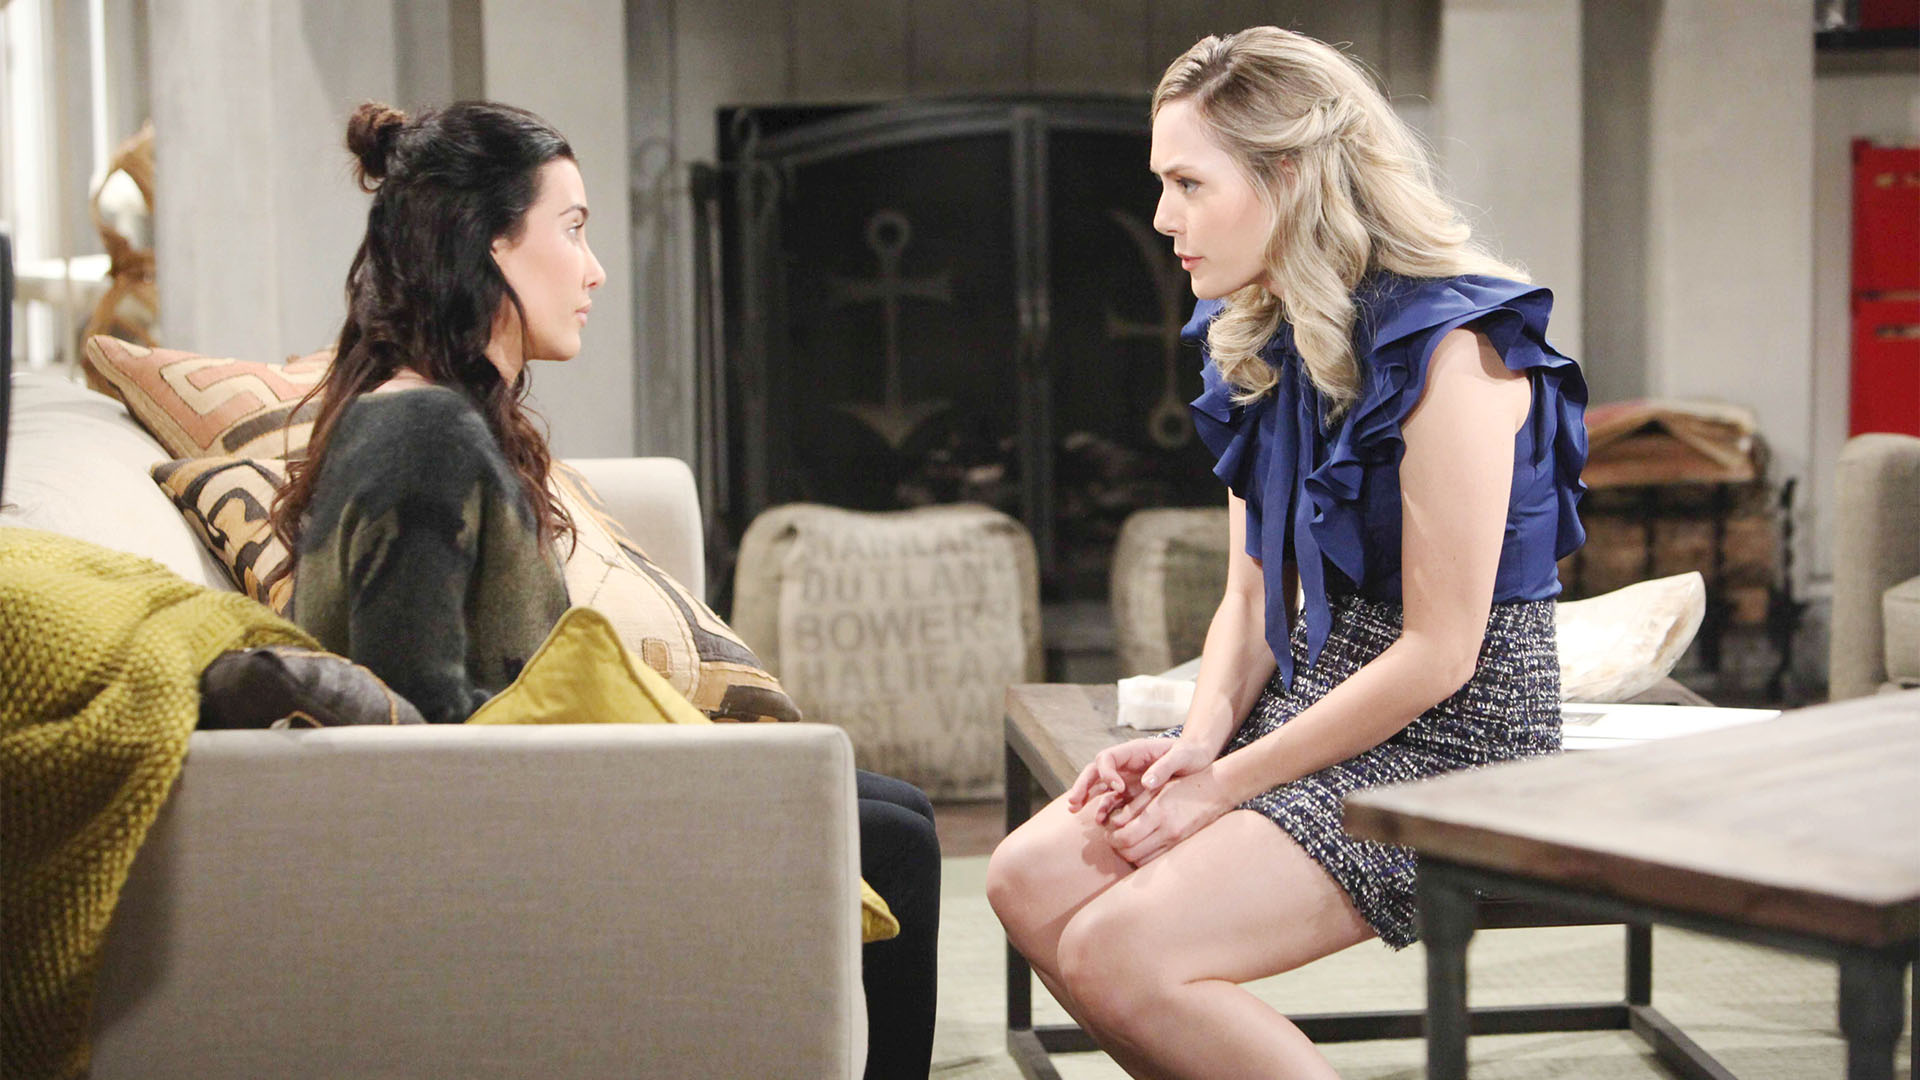 Steffy becomes defensive when her archrival, Hope, confronts her with a harsh fact.